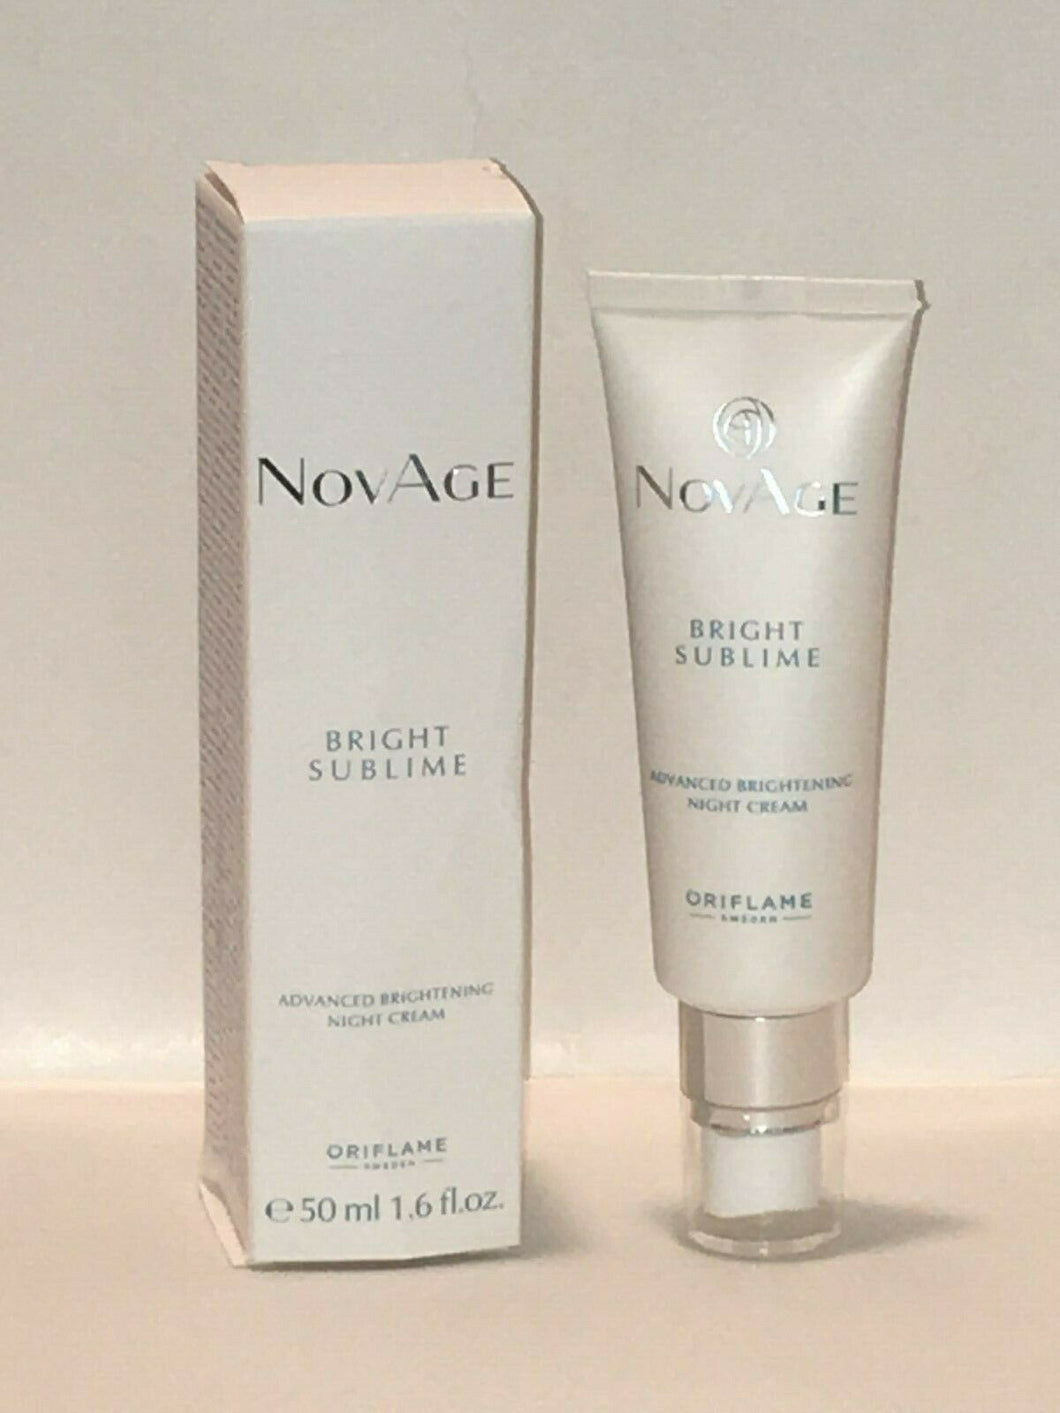 ORIFLAME SWEDEN NOVAGE BRIGHT SUBLIME ADV BRIGHTENING NIGHT CREAM 50 ml.NEW